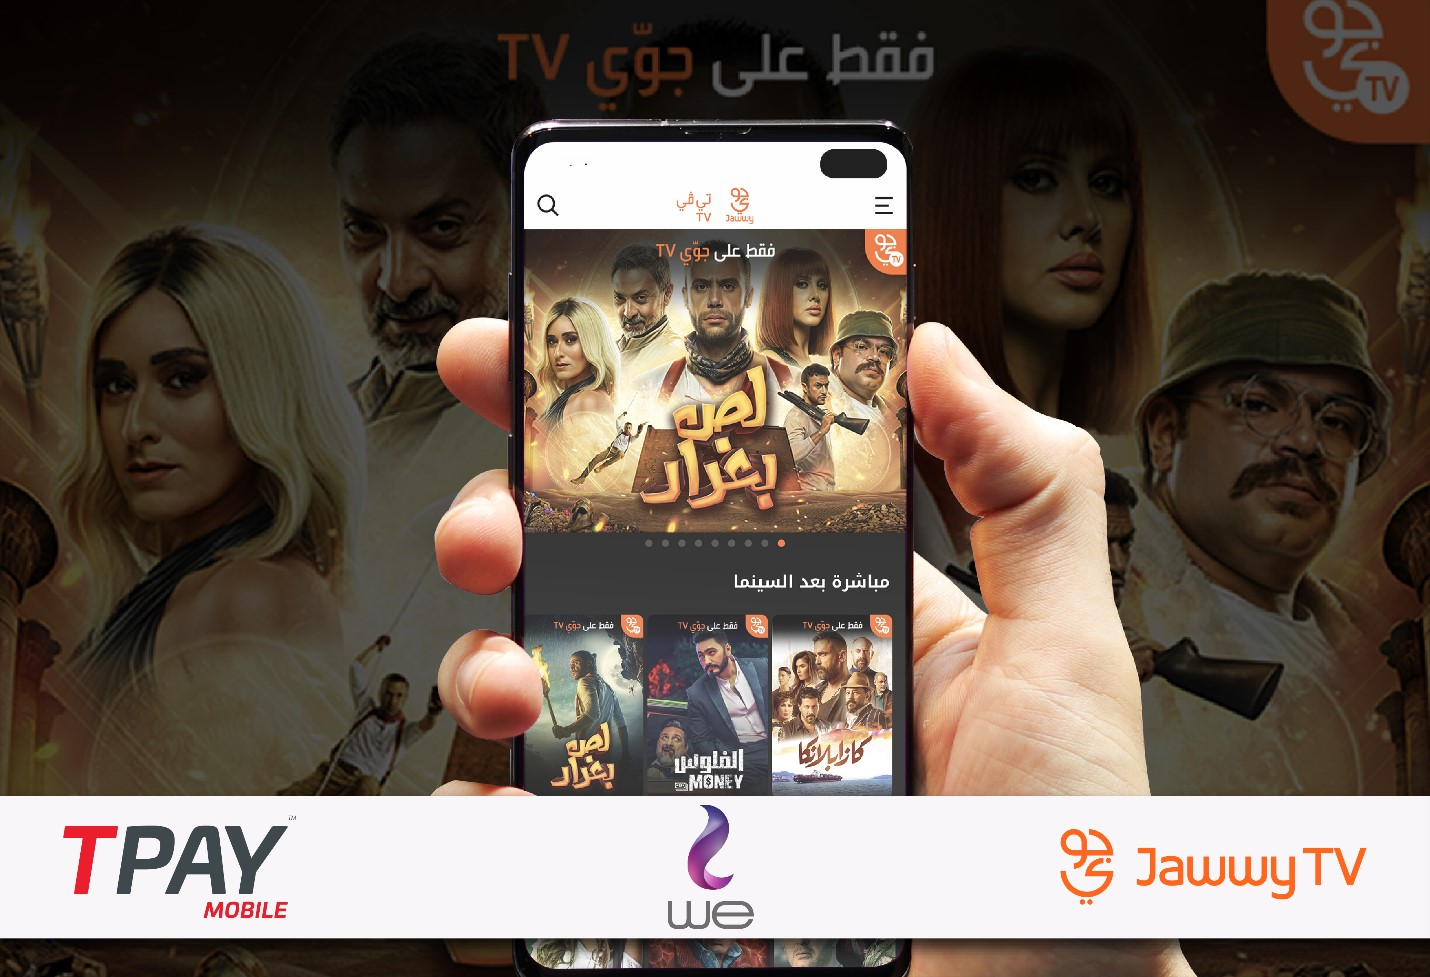 """Intigral Partners with Telecom Egypt """"WE"""" and TPAY MOBILE to Launch Mobile Payment for Jawwy TV for the First Time in Egypt"""